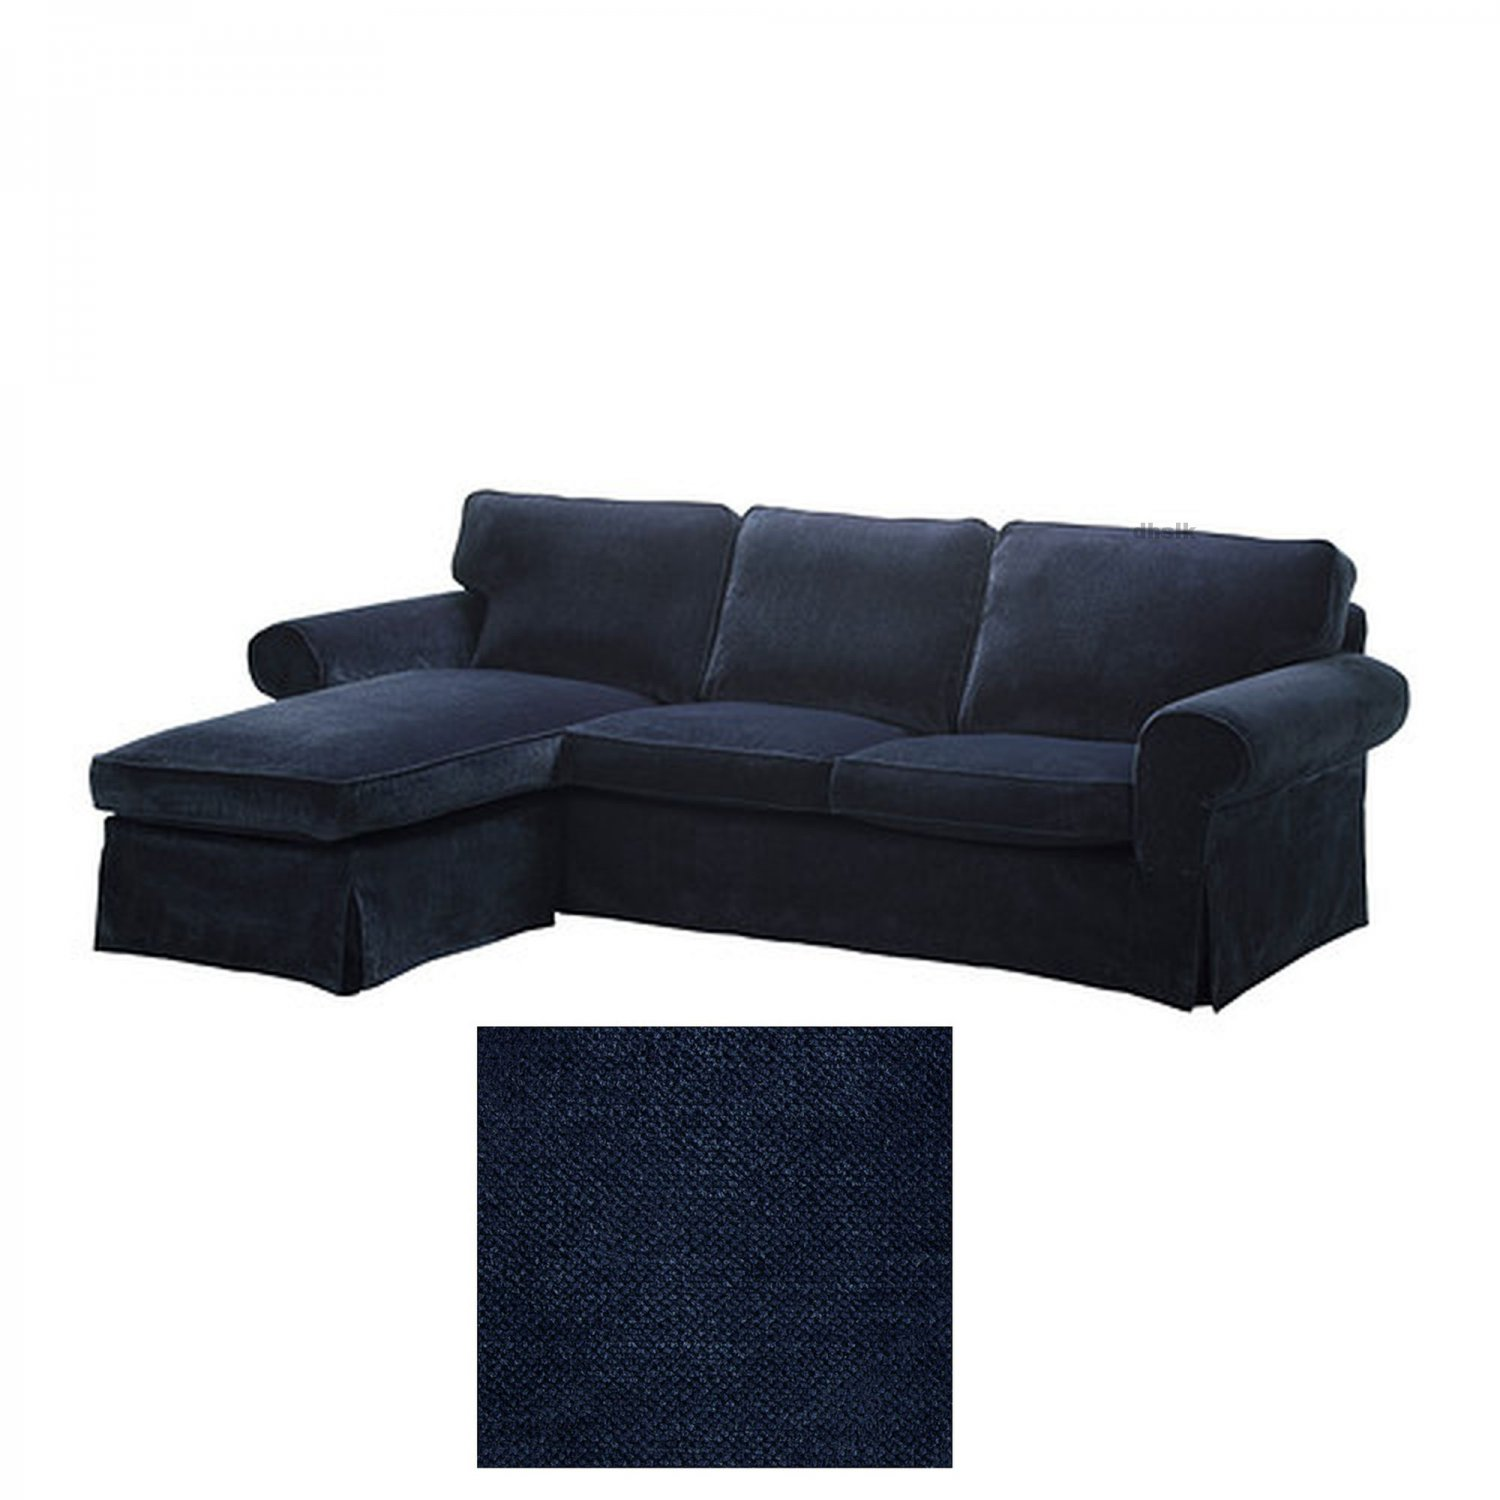 ikea ektorp loveseat sofa with chaise cover slipcover vellinge dark blue. Black Bedroom Furniture Sets. Home Design Ideas